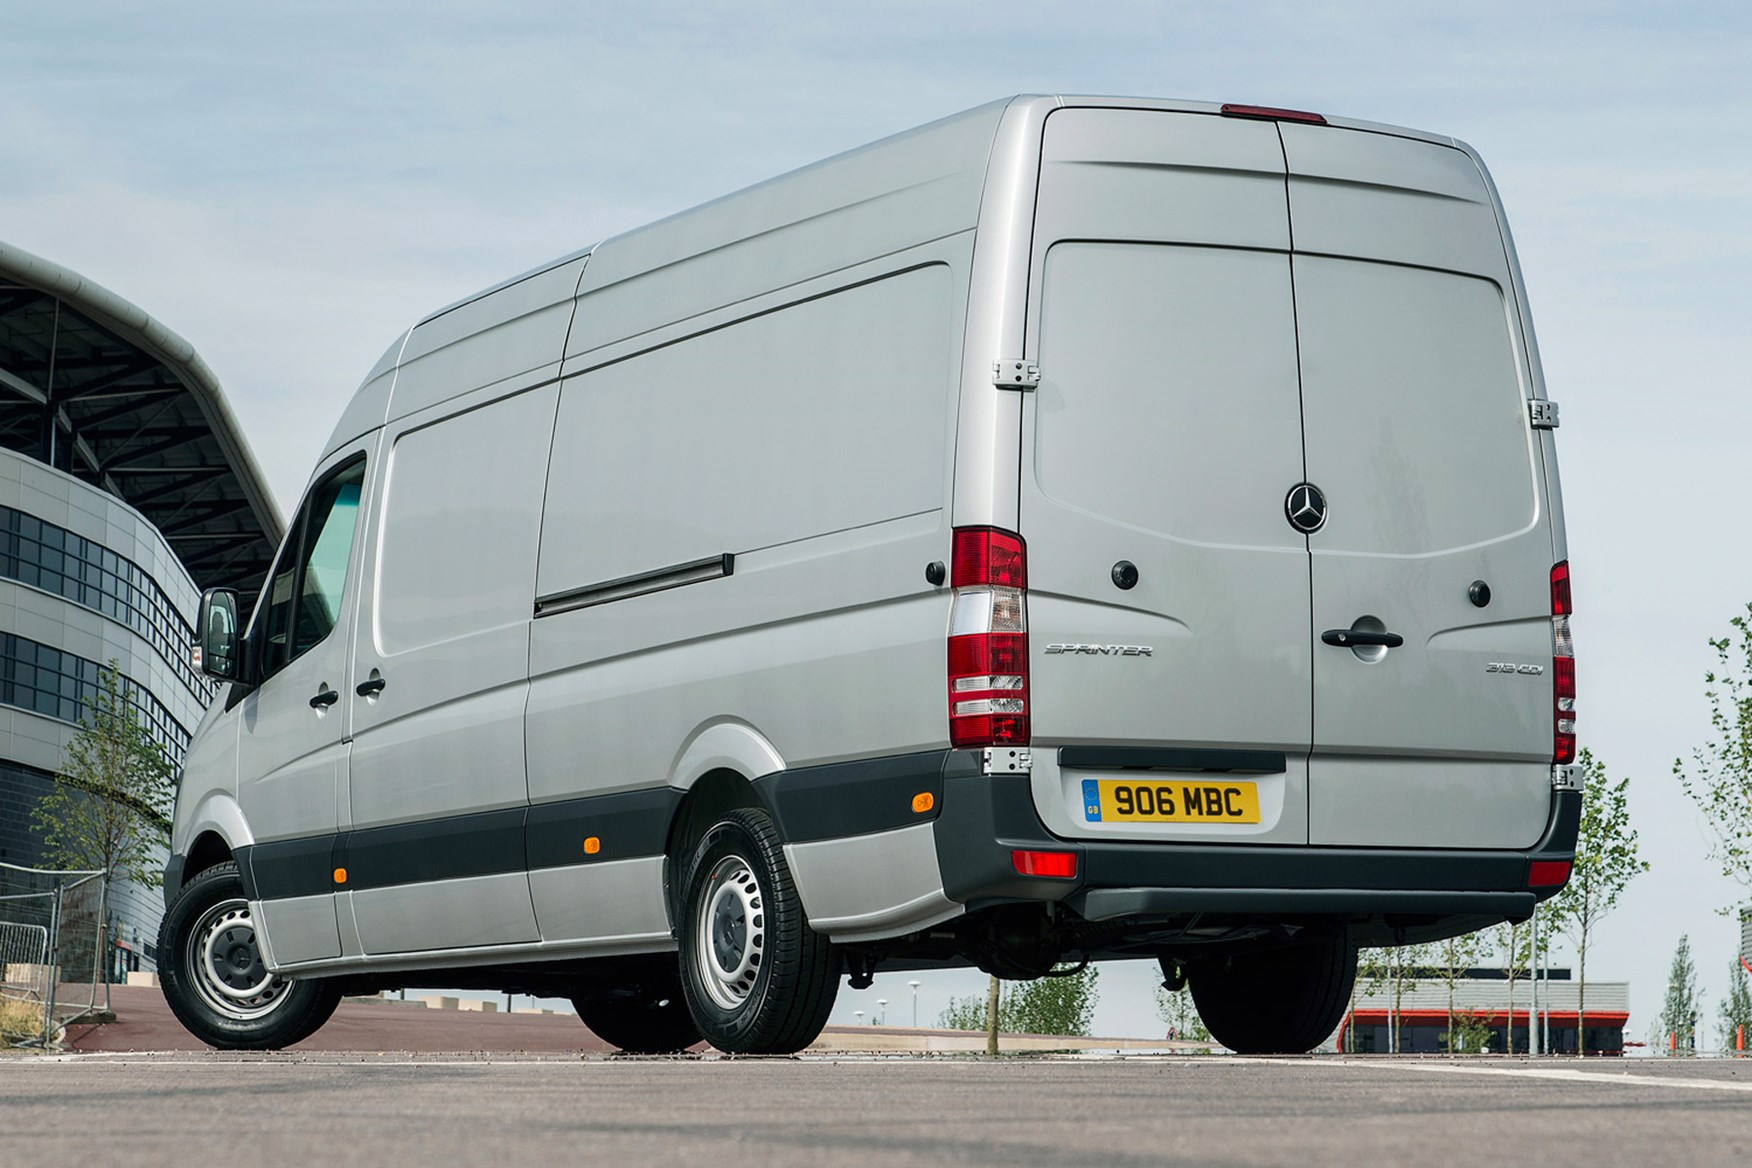 Mercedes-Benz Sprinter full review on Parkers Vans - rear exterior